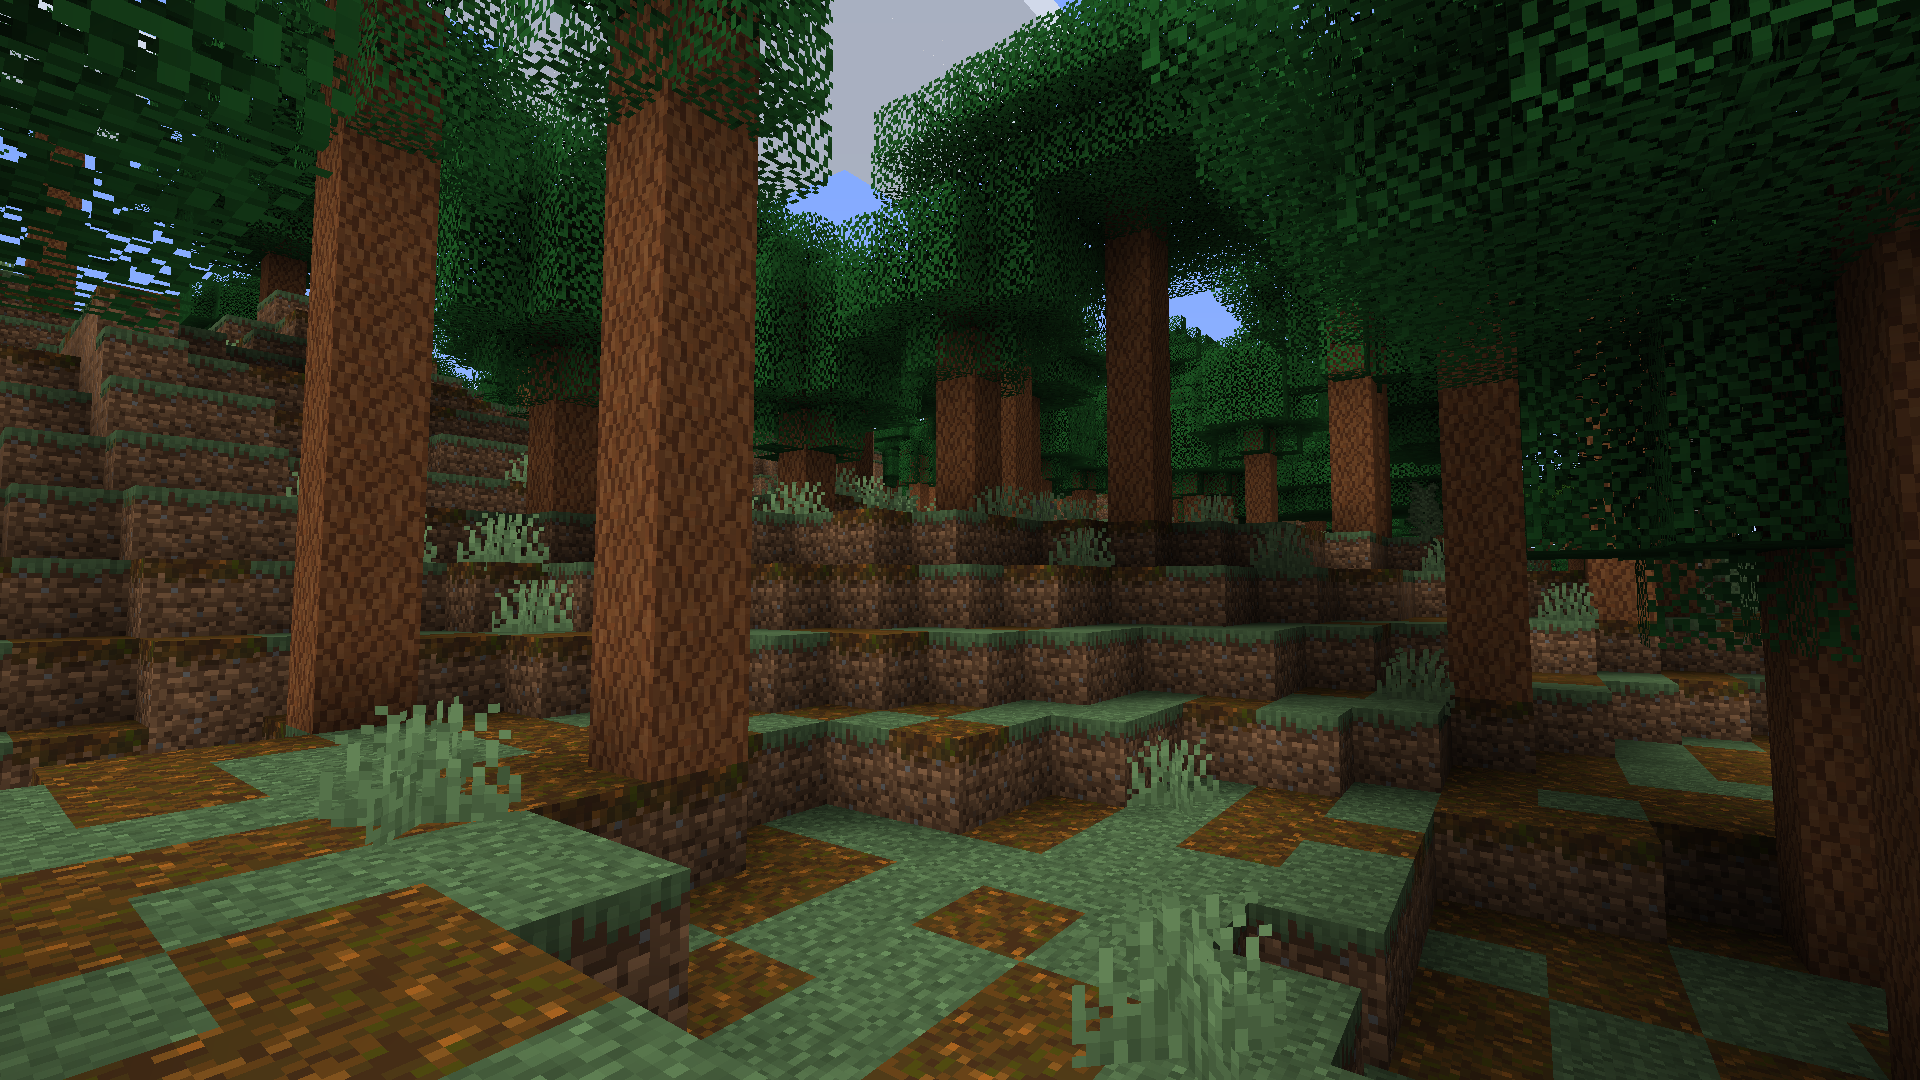 Pire forest